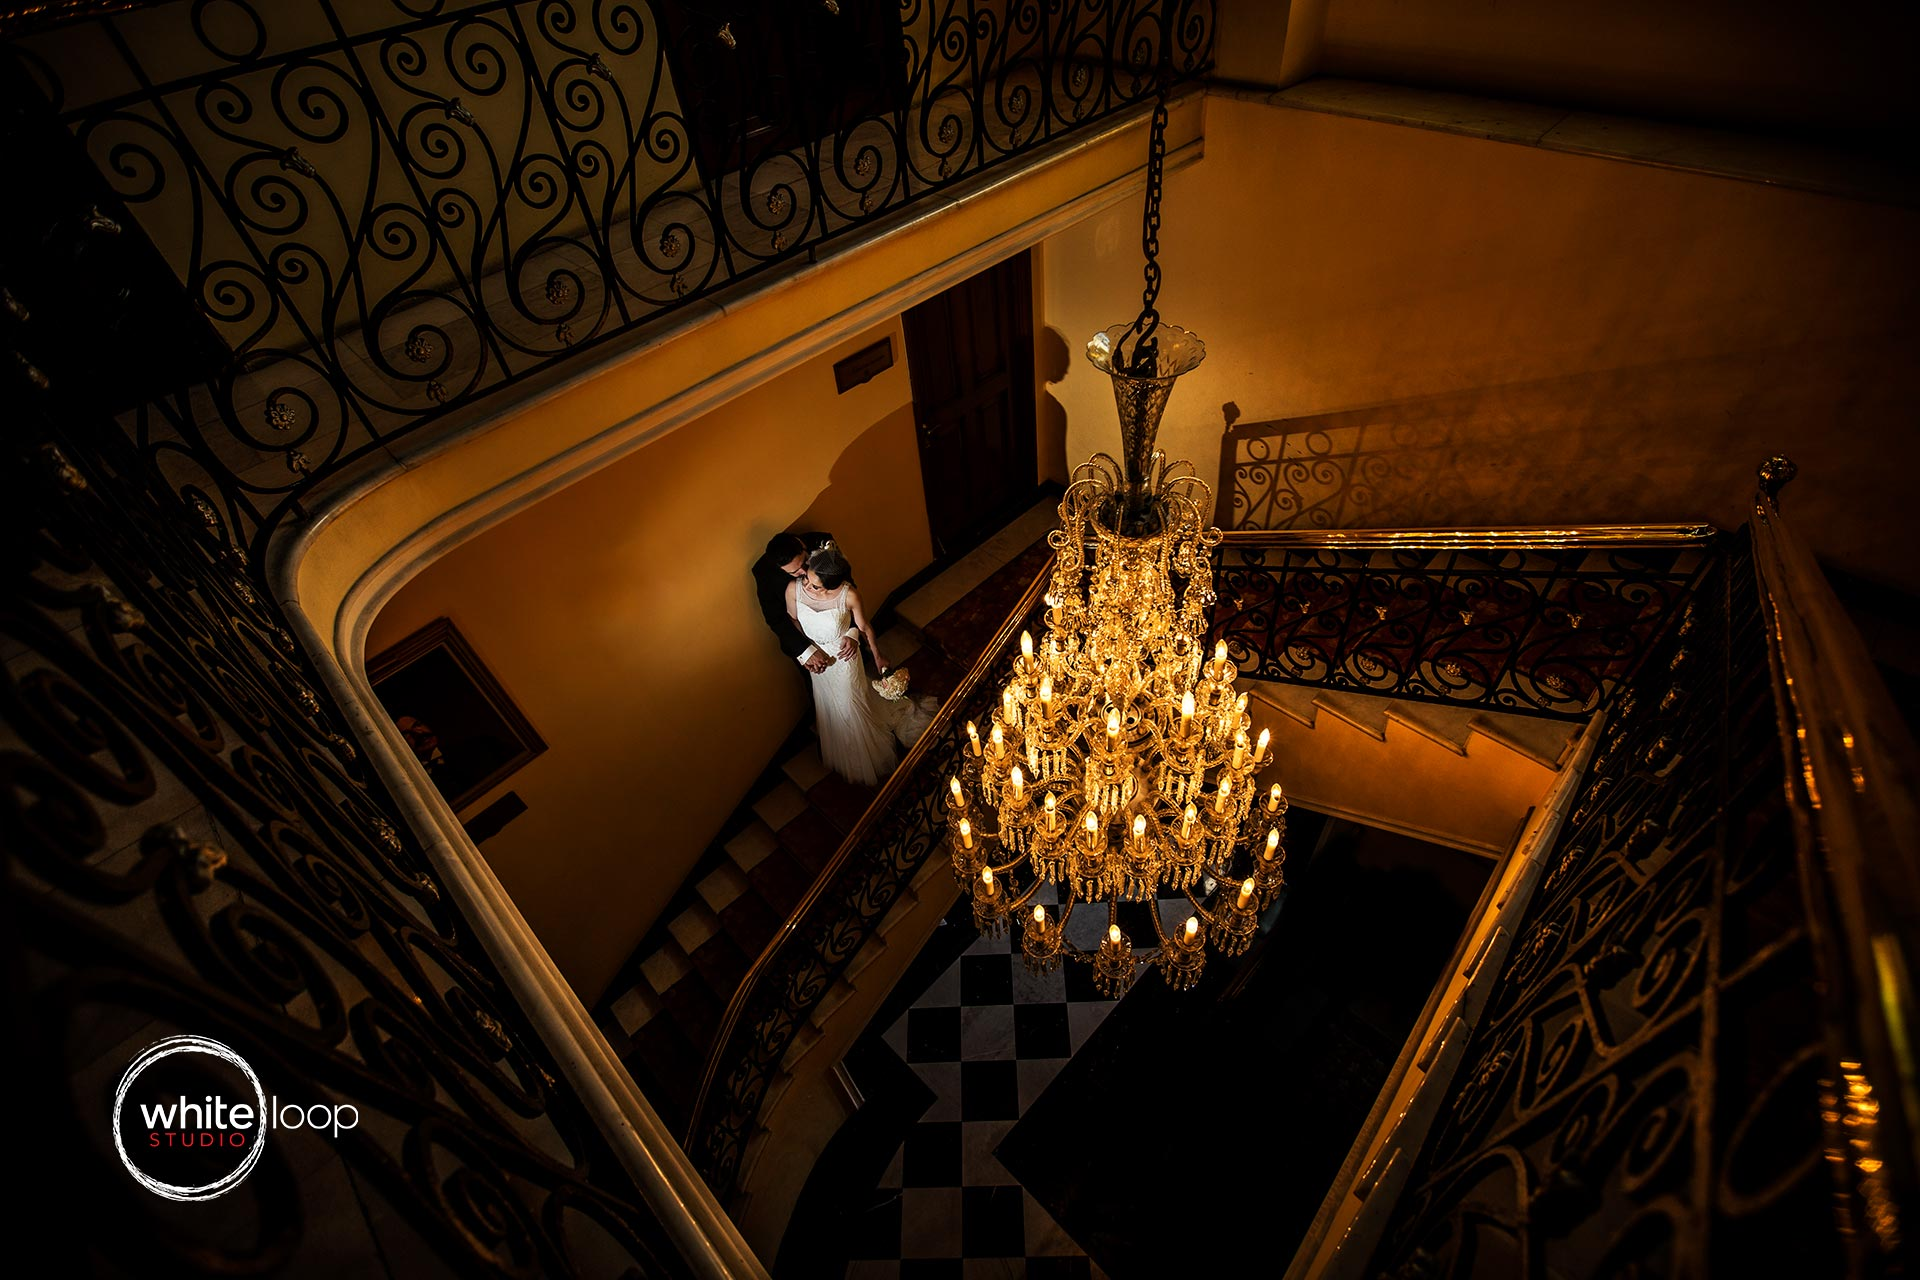 The groom and bride are holding each other in the stairs of an ancient house, illuminated by the lights of the chandelier.